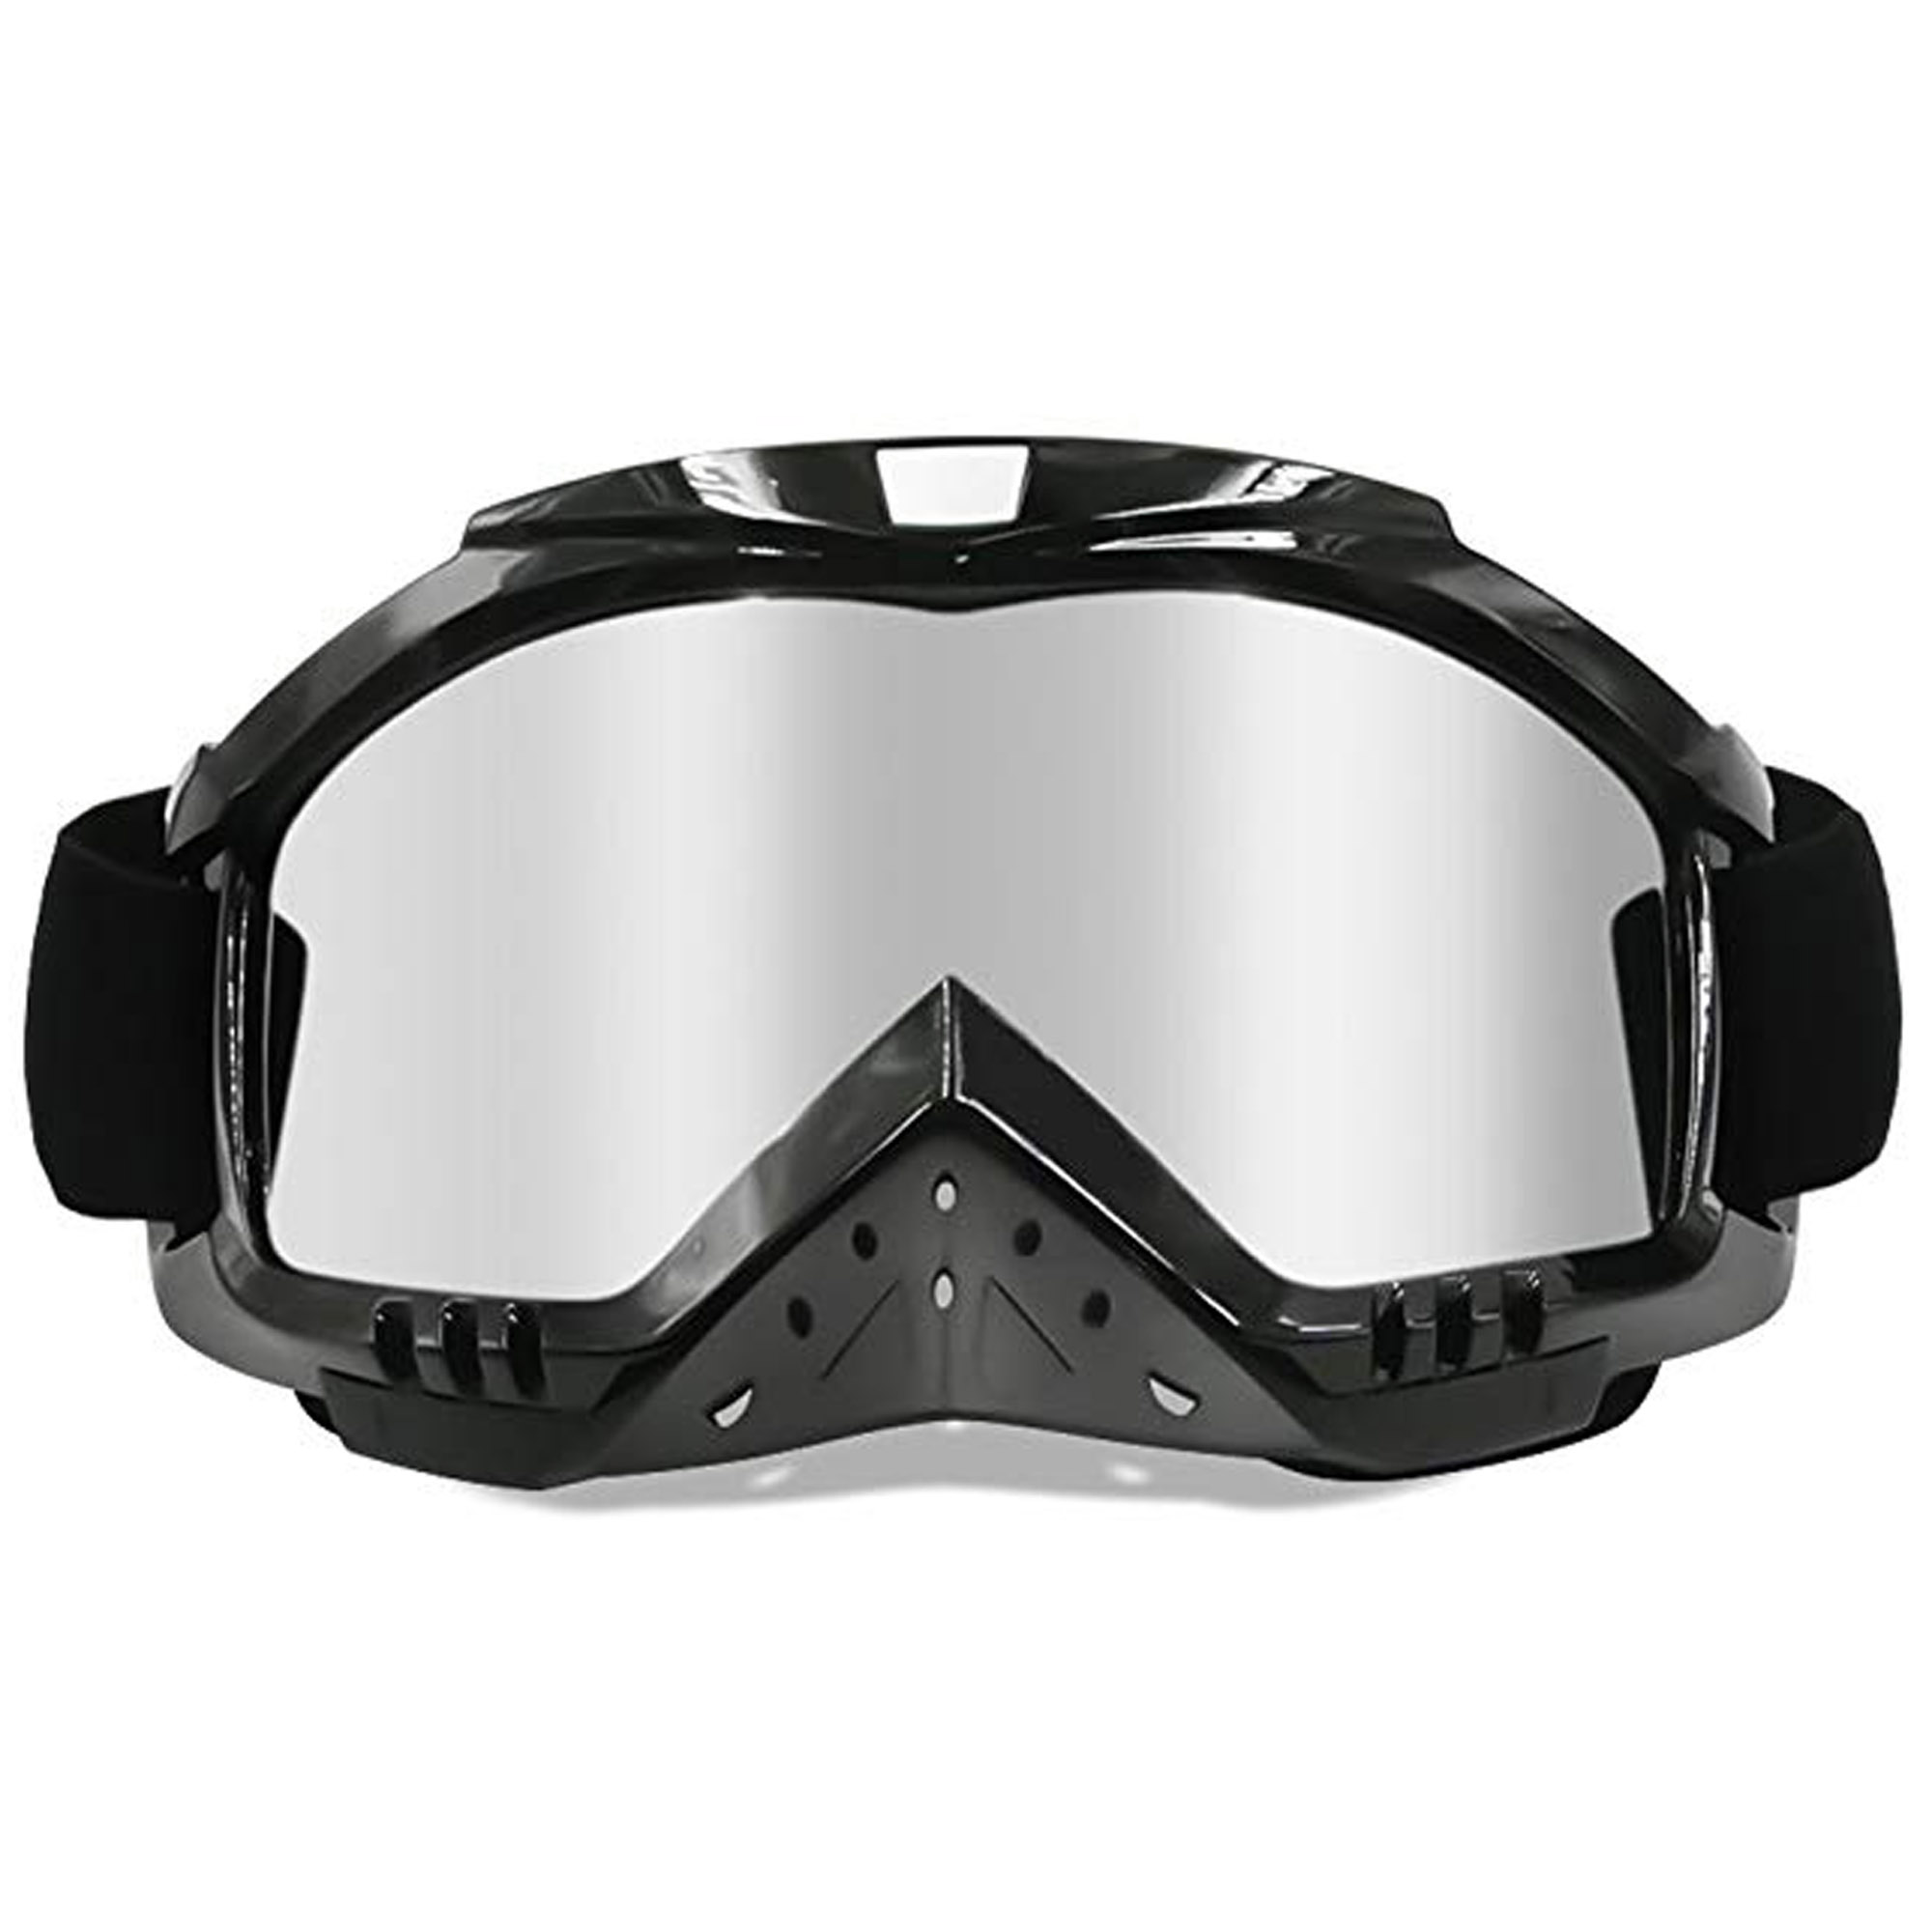 C.F.GOGGLE Motorcycle Goggles, Motocross Goggles Grip Helmet Windproof Dustproof Anti Fog Safety Glasses ATV Off Road Racing, Colorful Lens for Men & Women & Adults & Youth